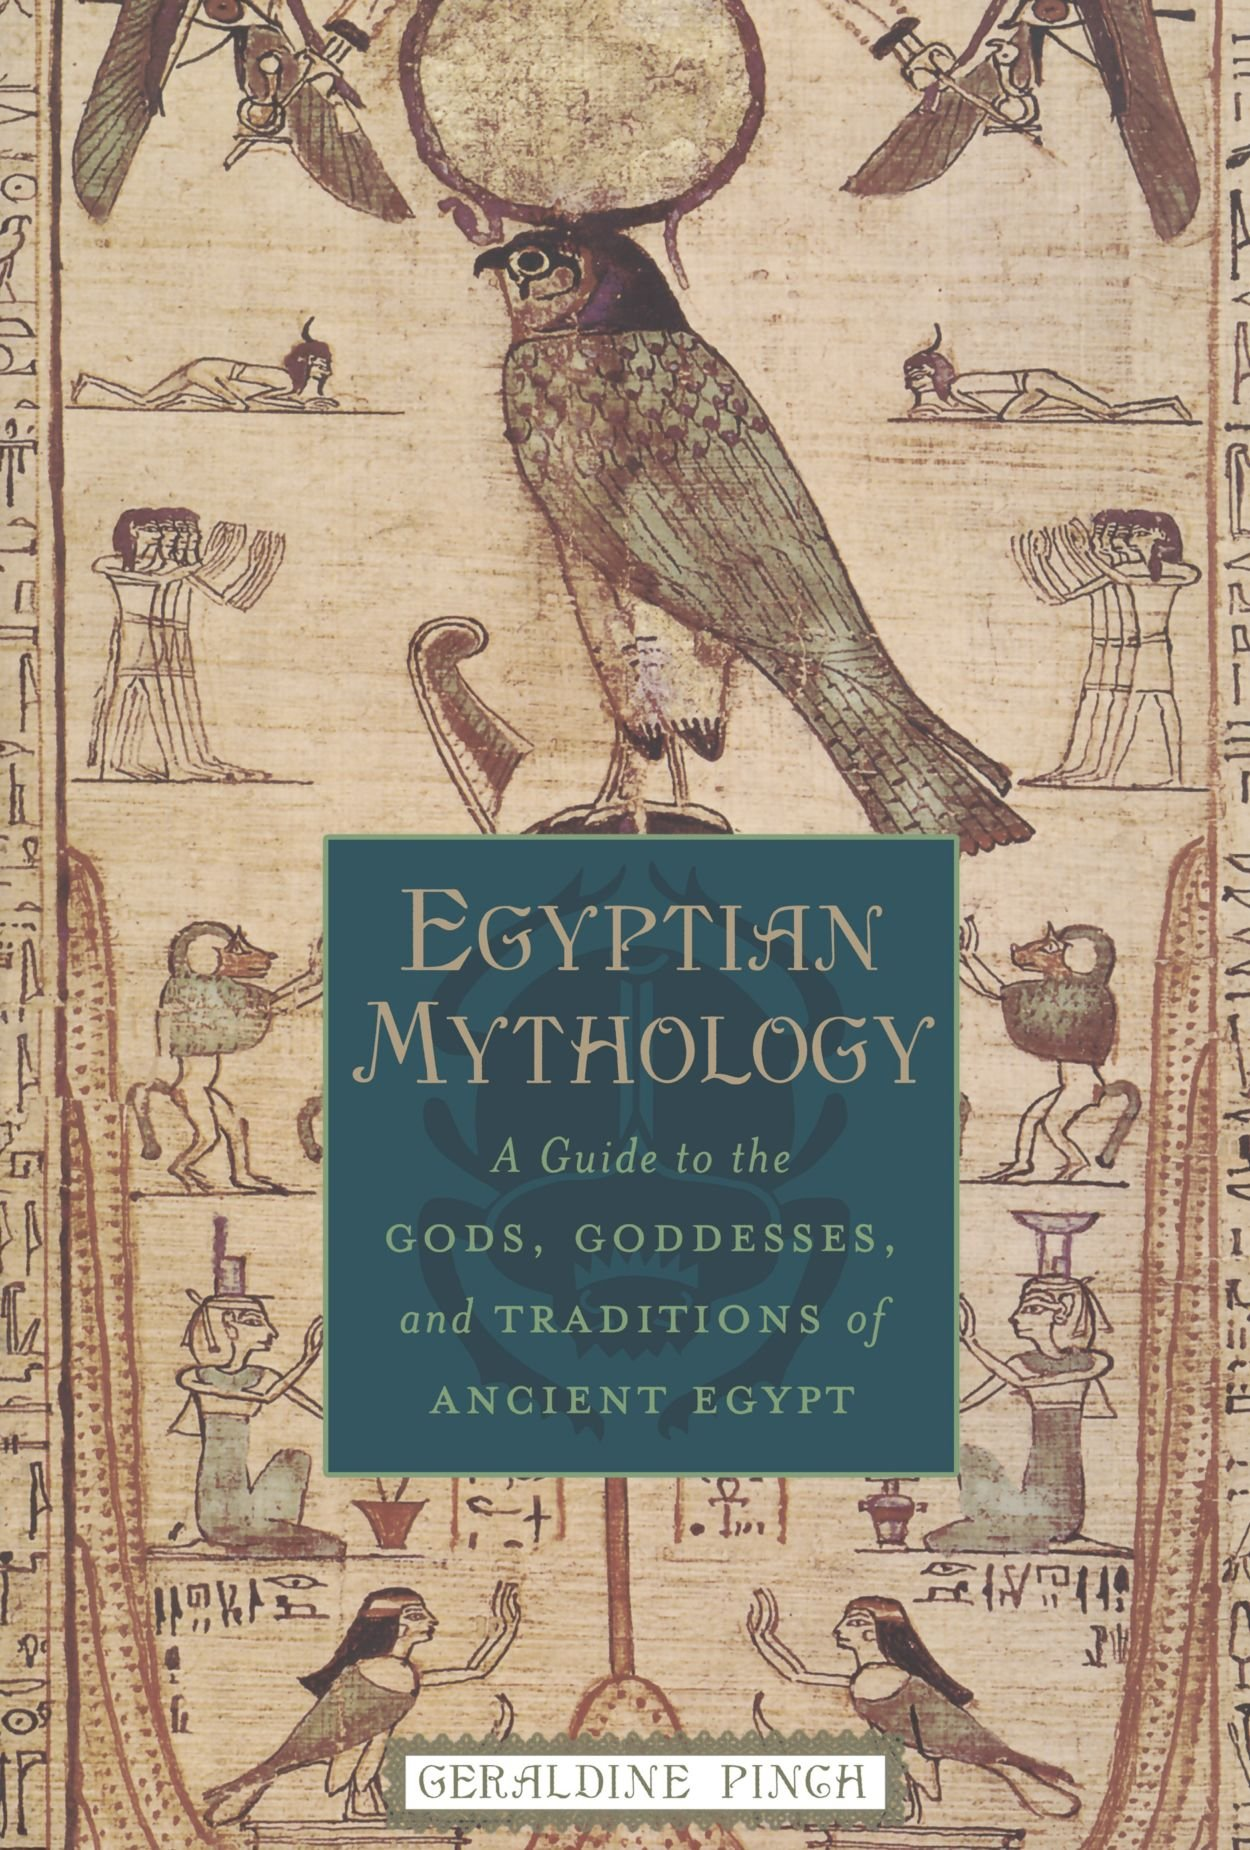 Egyptian mythology a guide to the gods goddesses and traditions egyptian mythology a guide to the gods goddesses and traditions of ancient egypt geraldine pinch 8601300133669 amazon books publicscrutiny Image collections